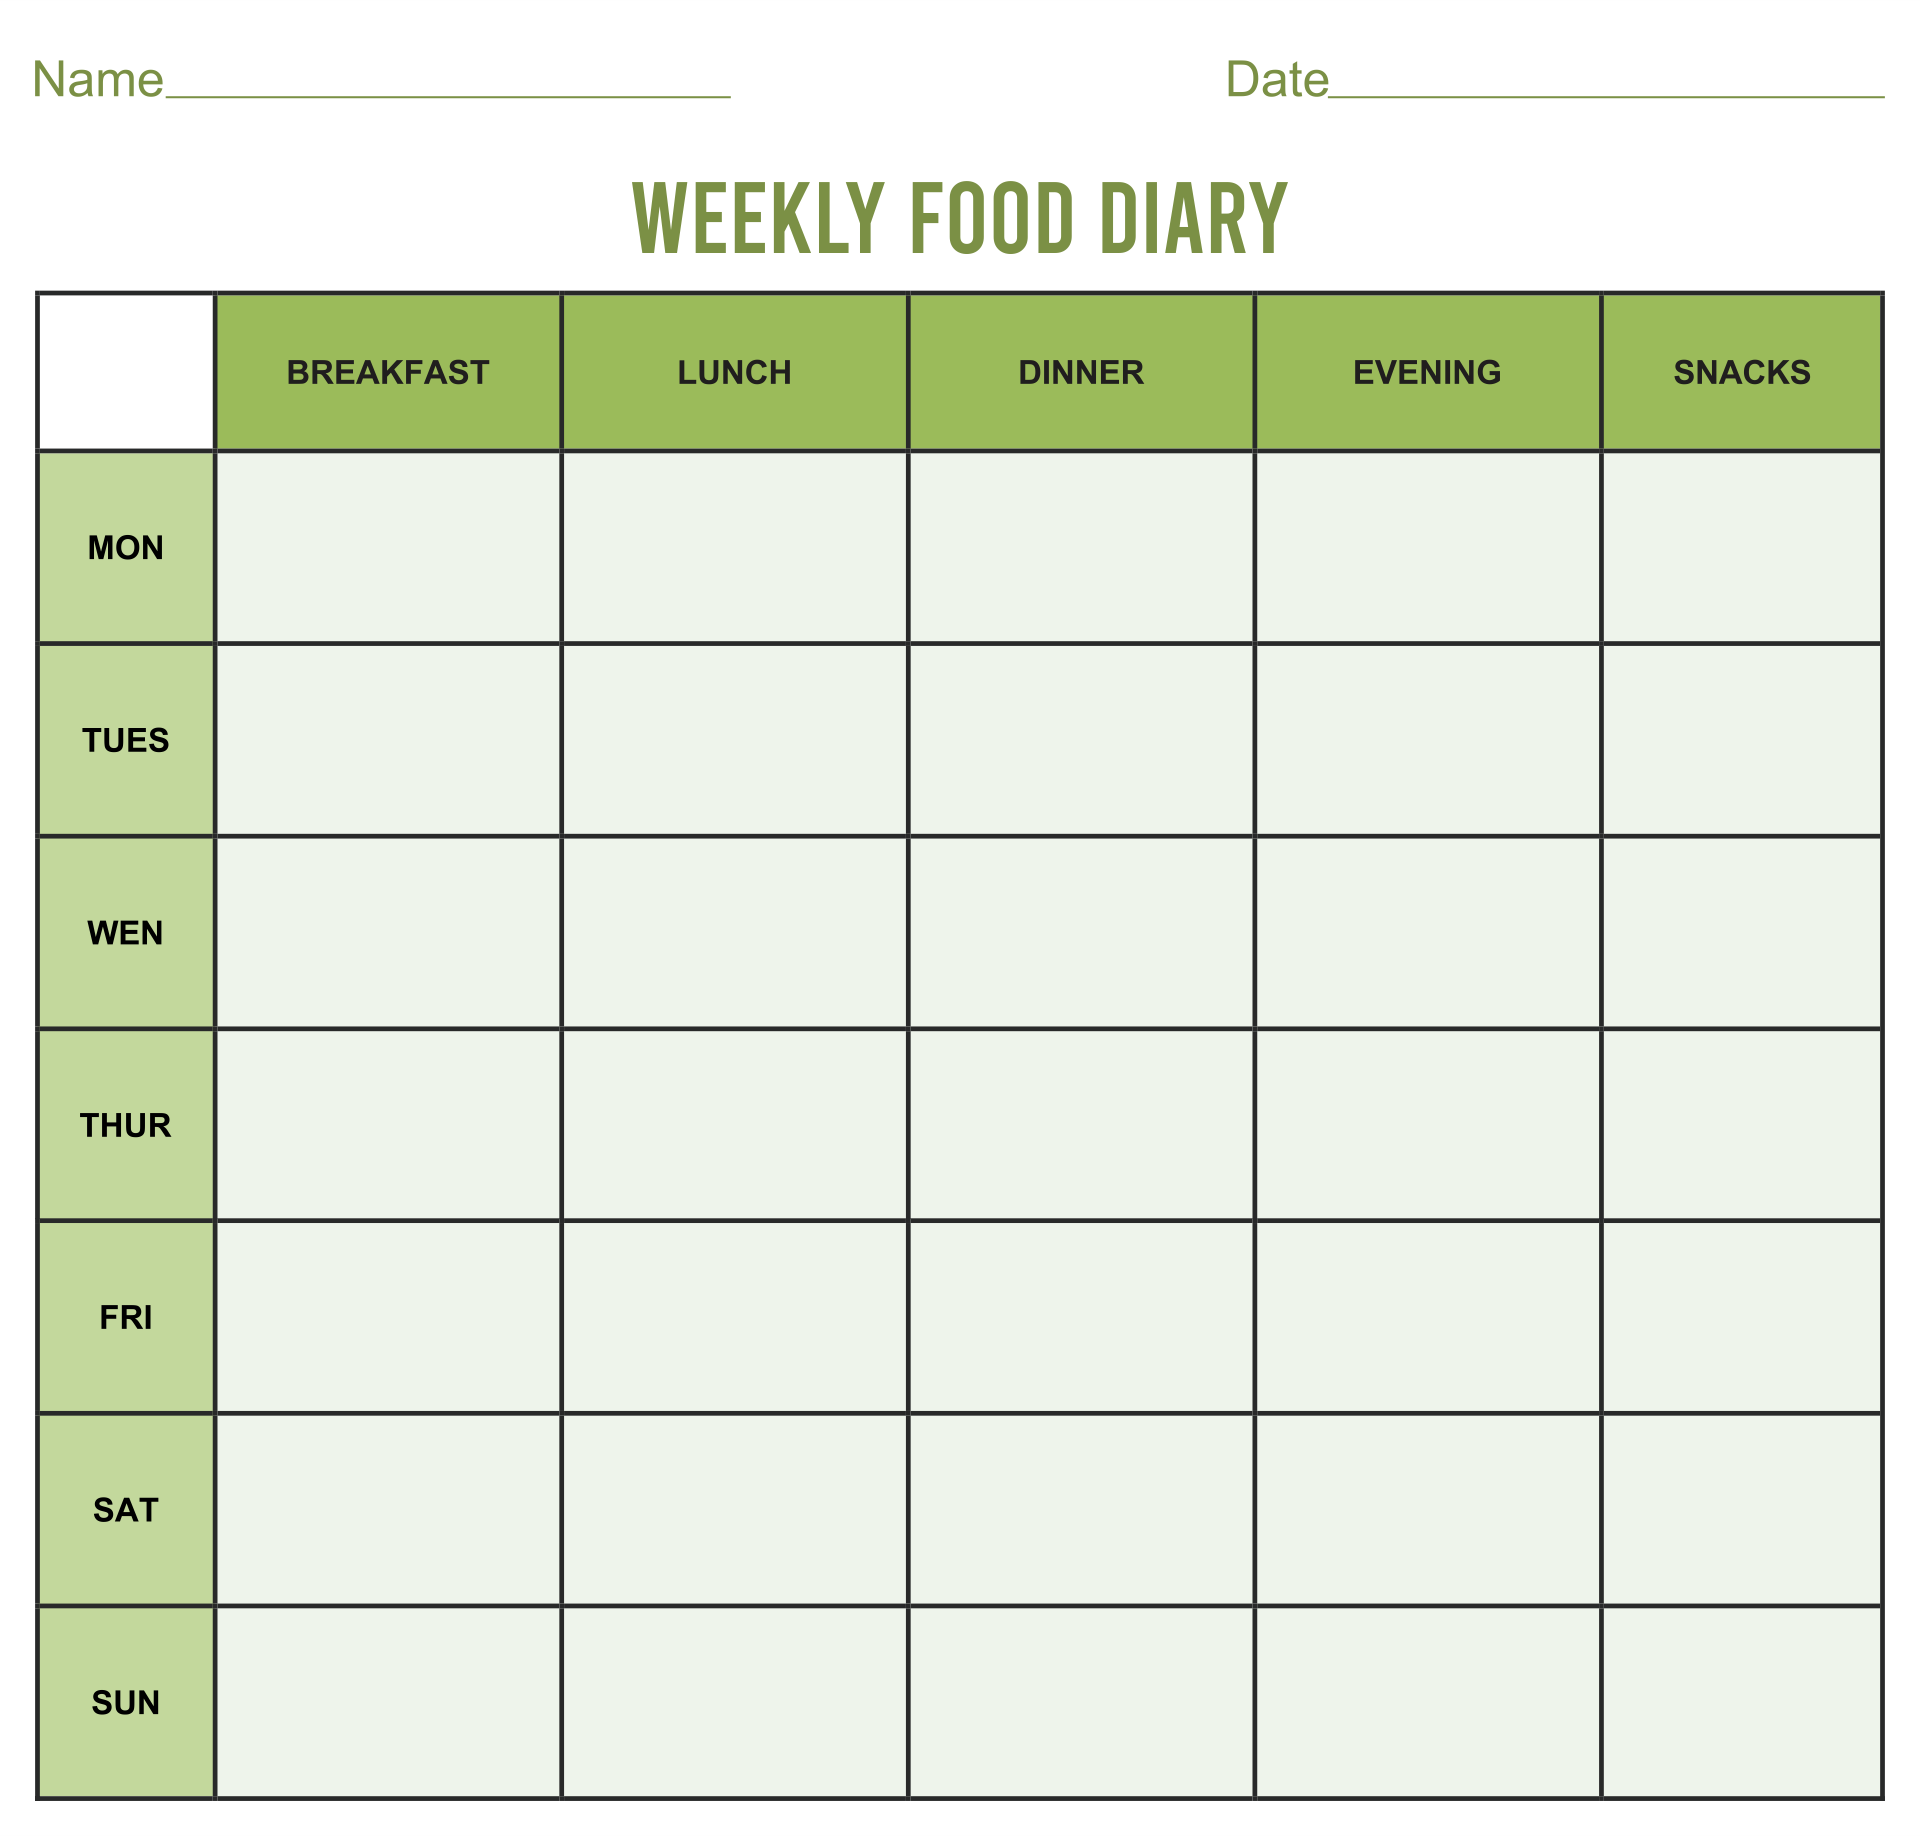 7 Best Images of Printable 7-Day Food Journal - Printable ...